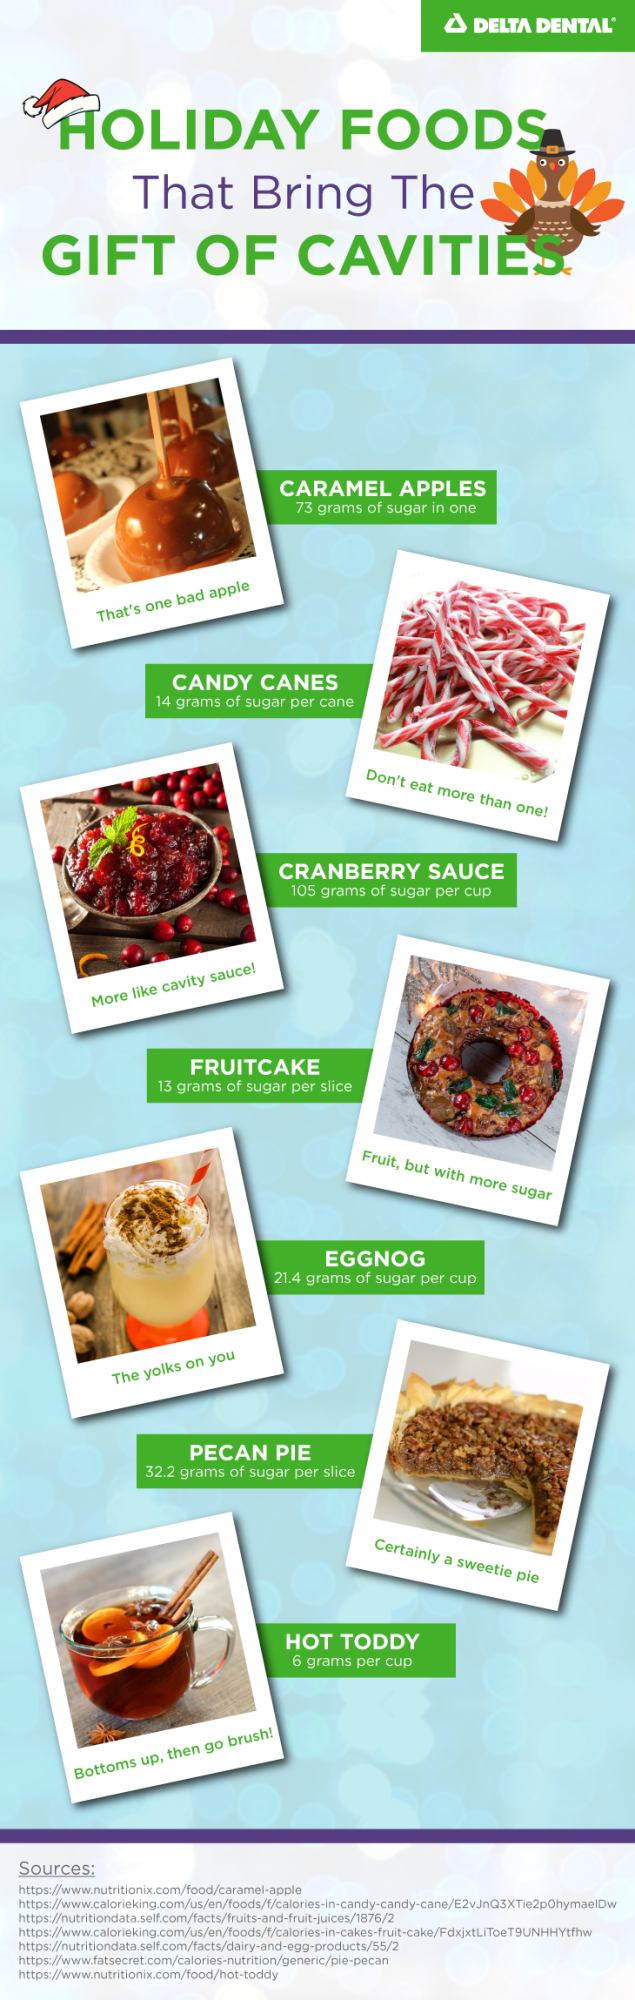 If you're adding these holiday food favorites to your list, keep in mind they are holiday foods that